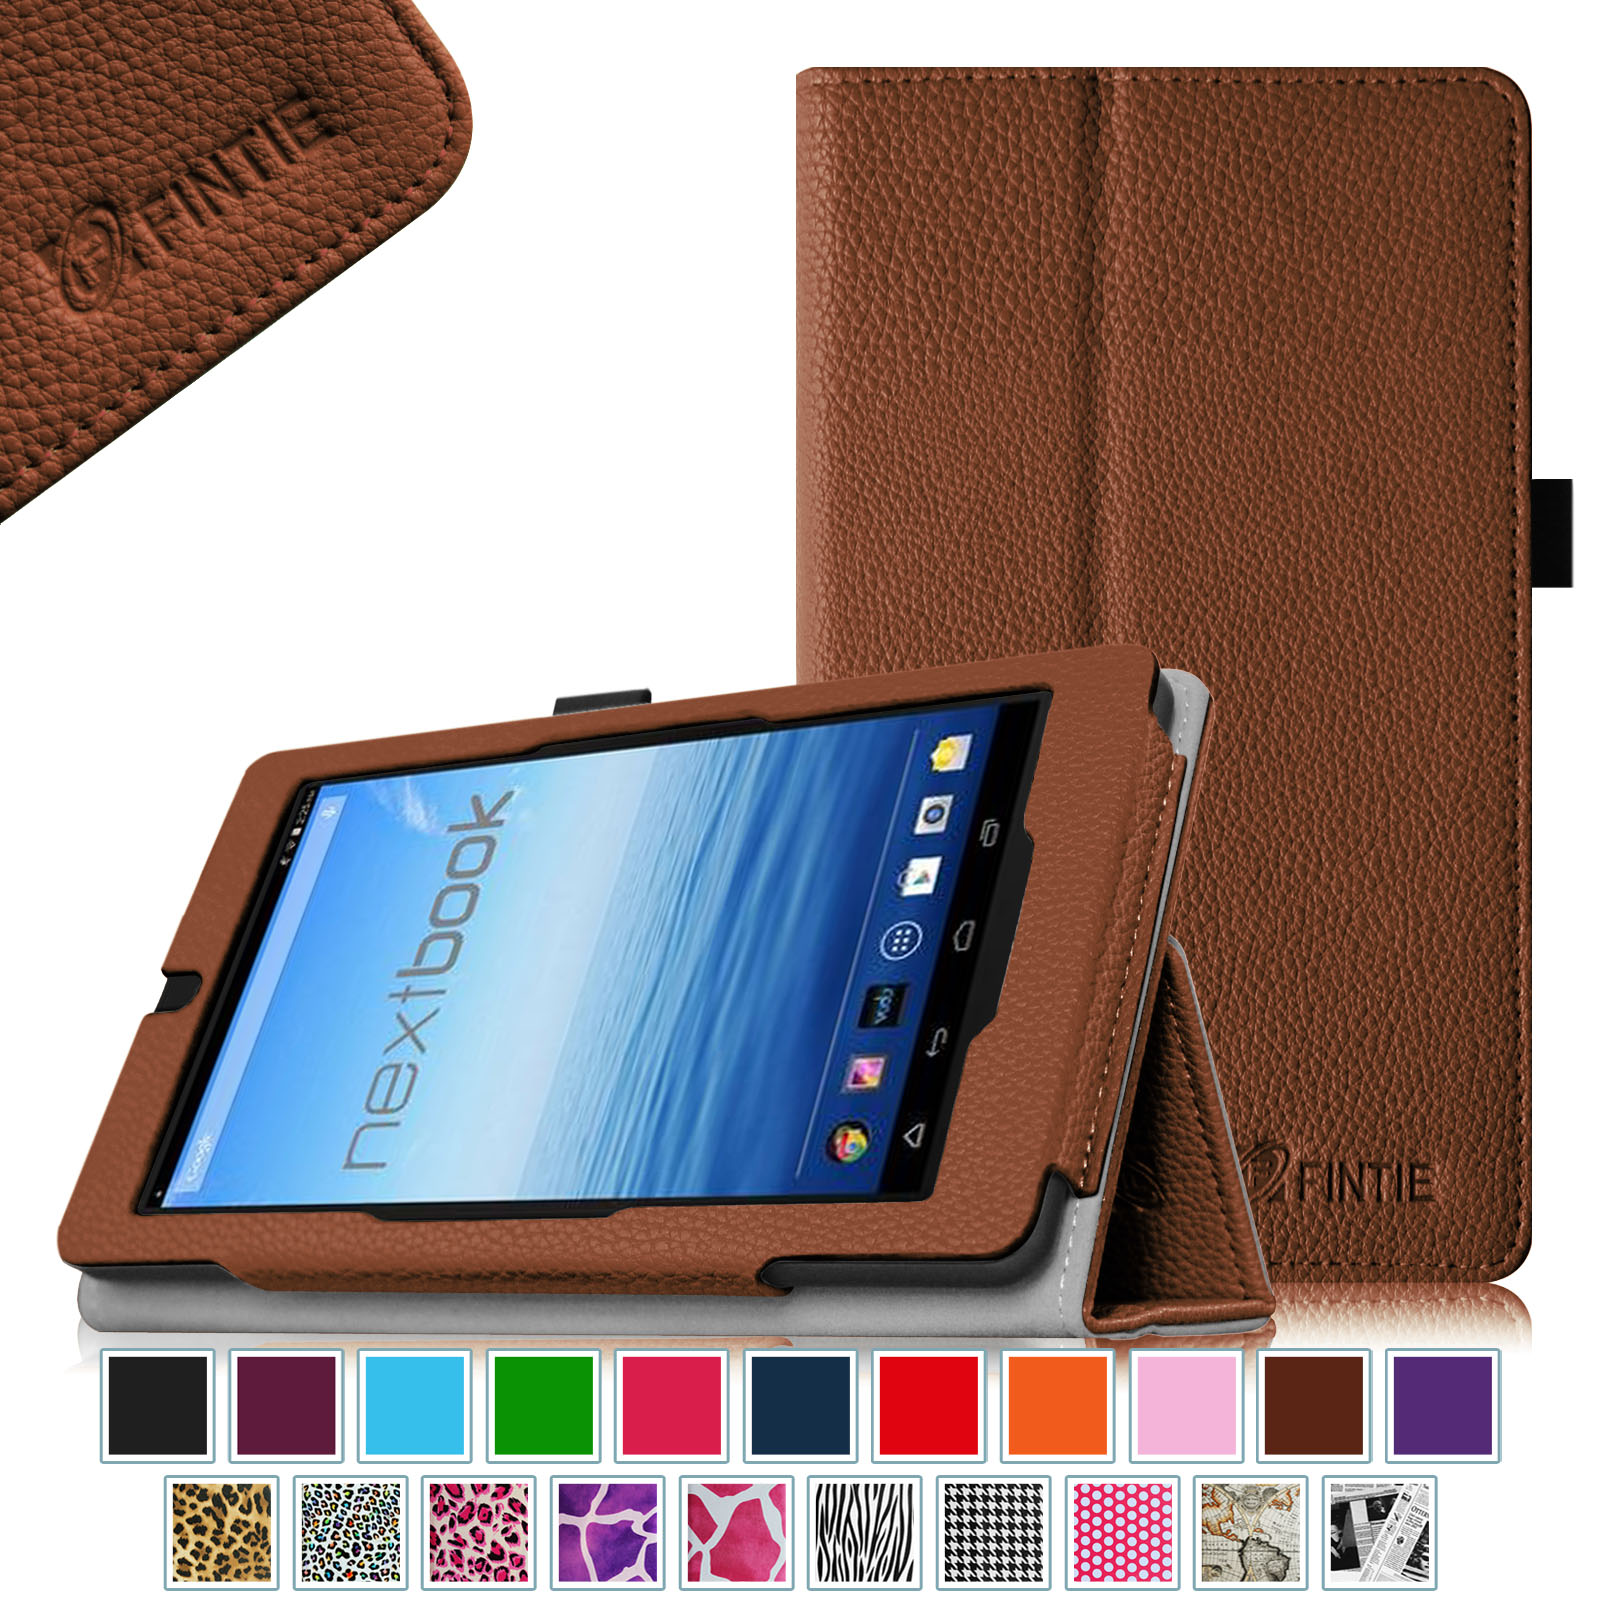 "Fintie Nextbook 7"" Tablet (NX700QC16G) Case - Premium PU Leather Folio Cover With Stylus Holder, Brown"